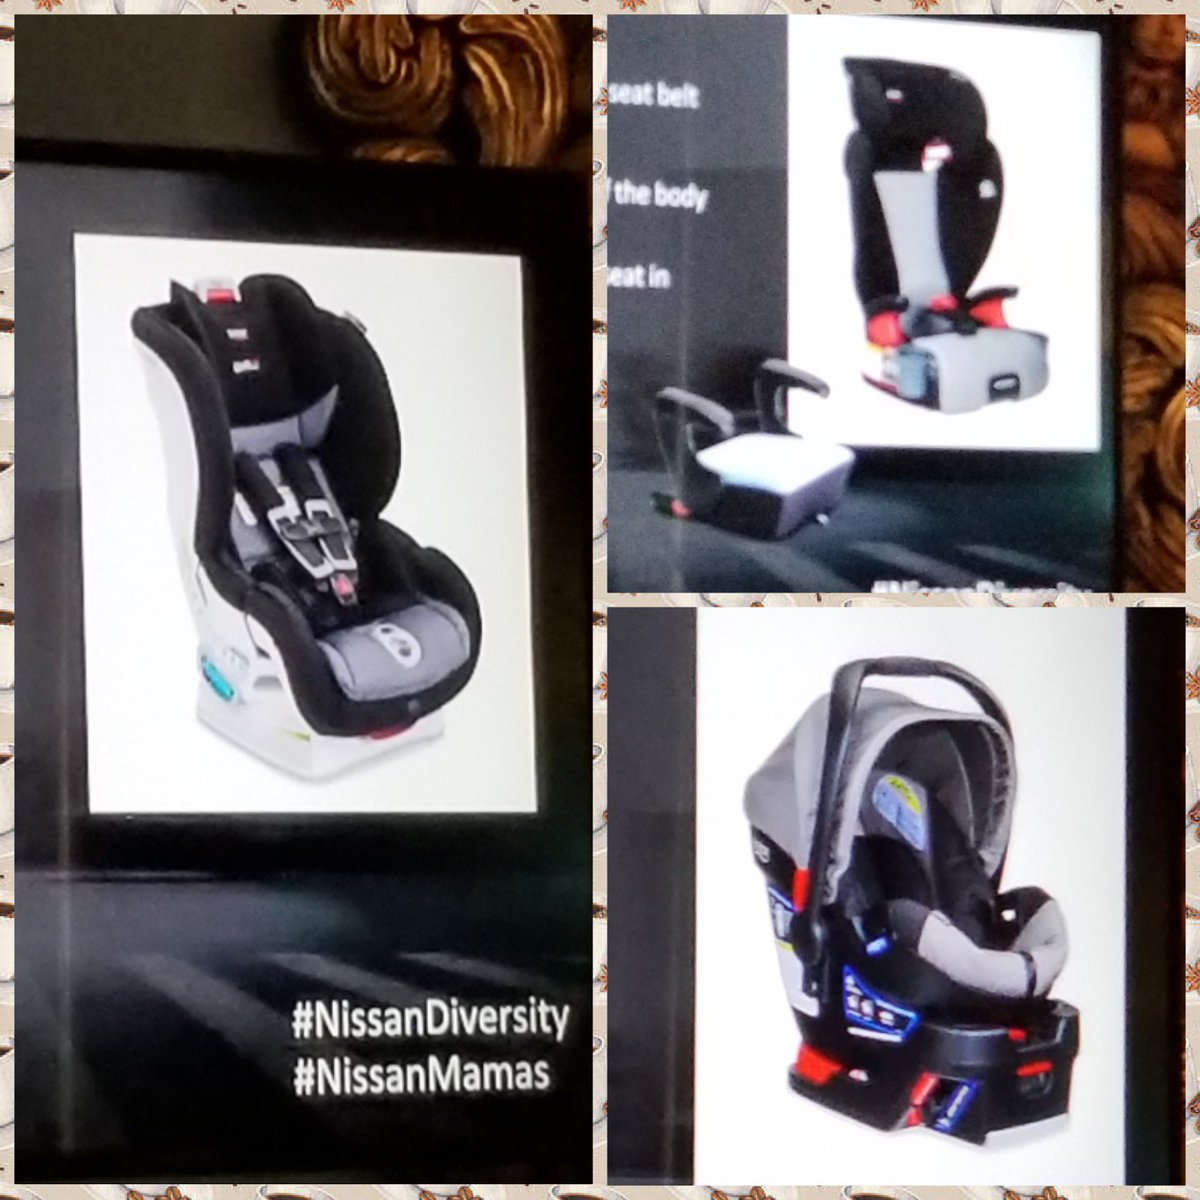 Mommy Robot On Twitter Check Your Carseats Expiration Date Typically 6 Years From Manufacturing Listed The Carseat